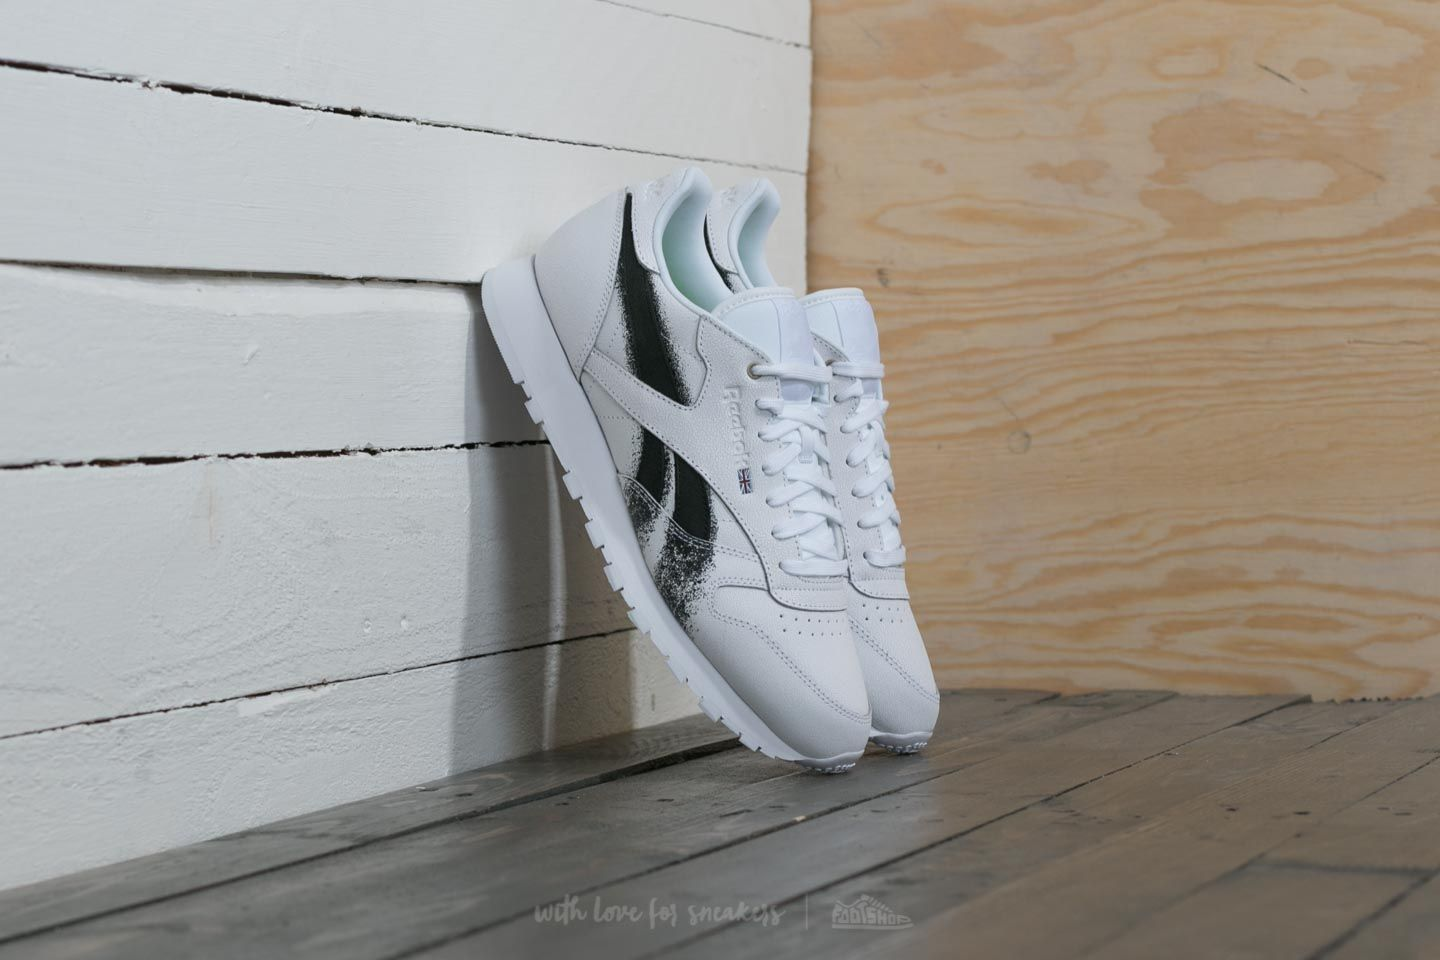 Reebok x Montana Cans Classic Leather